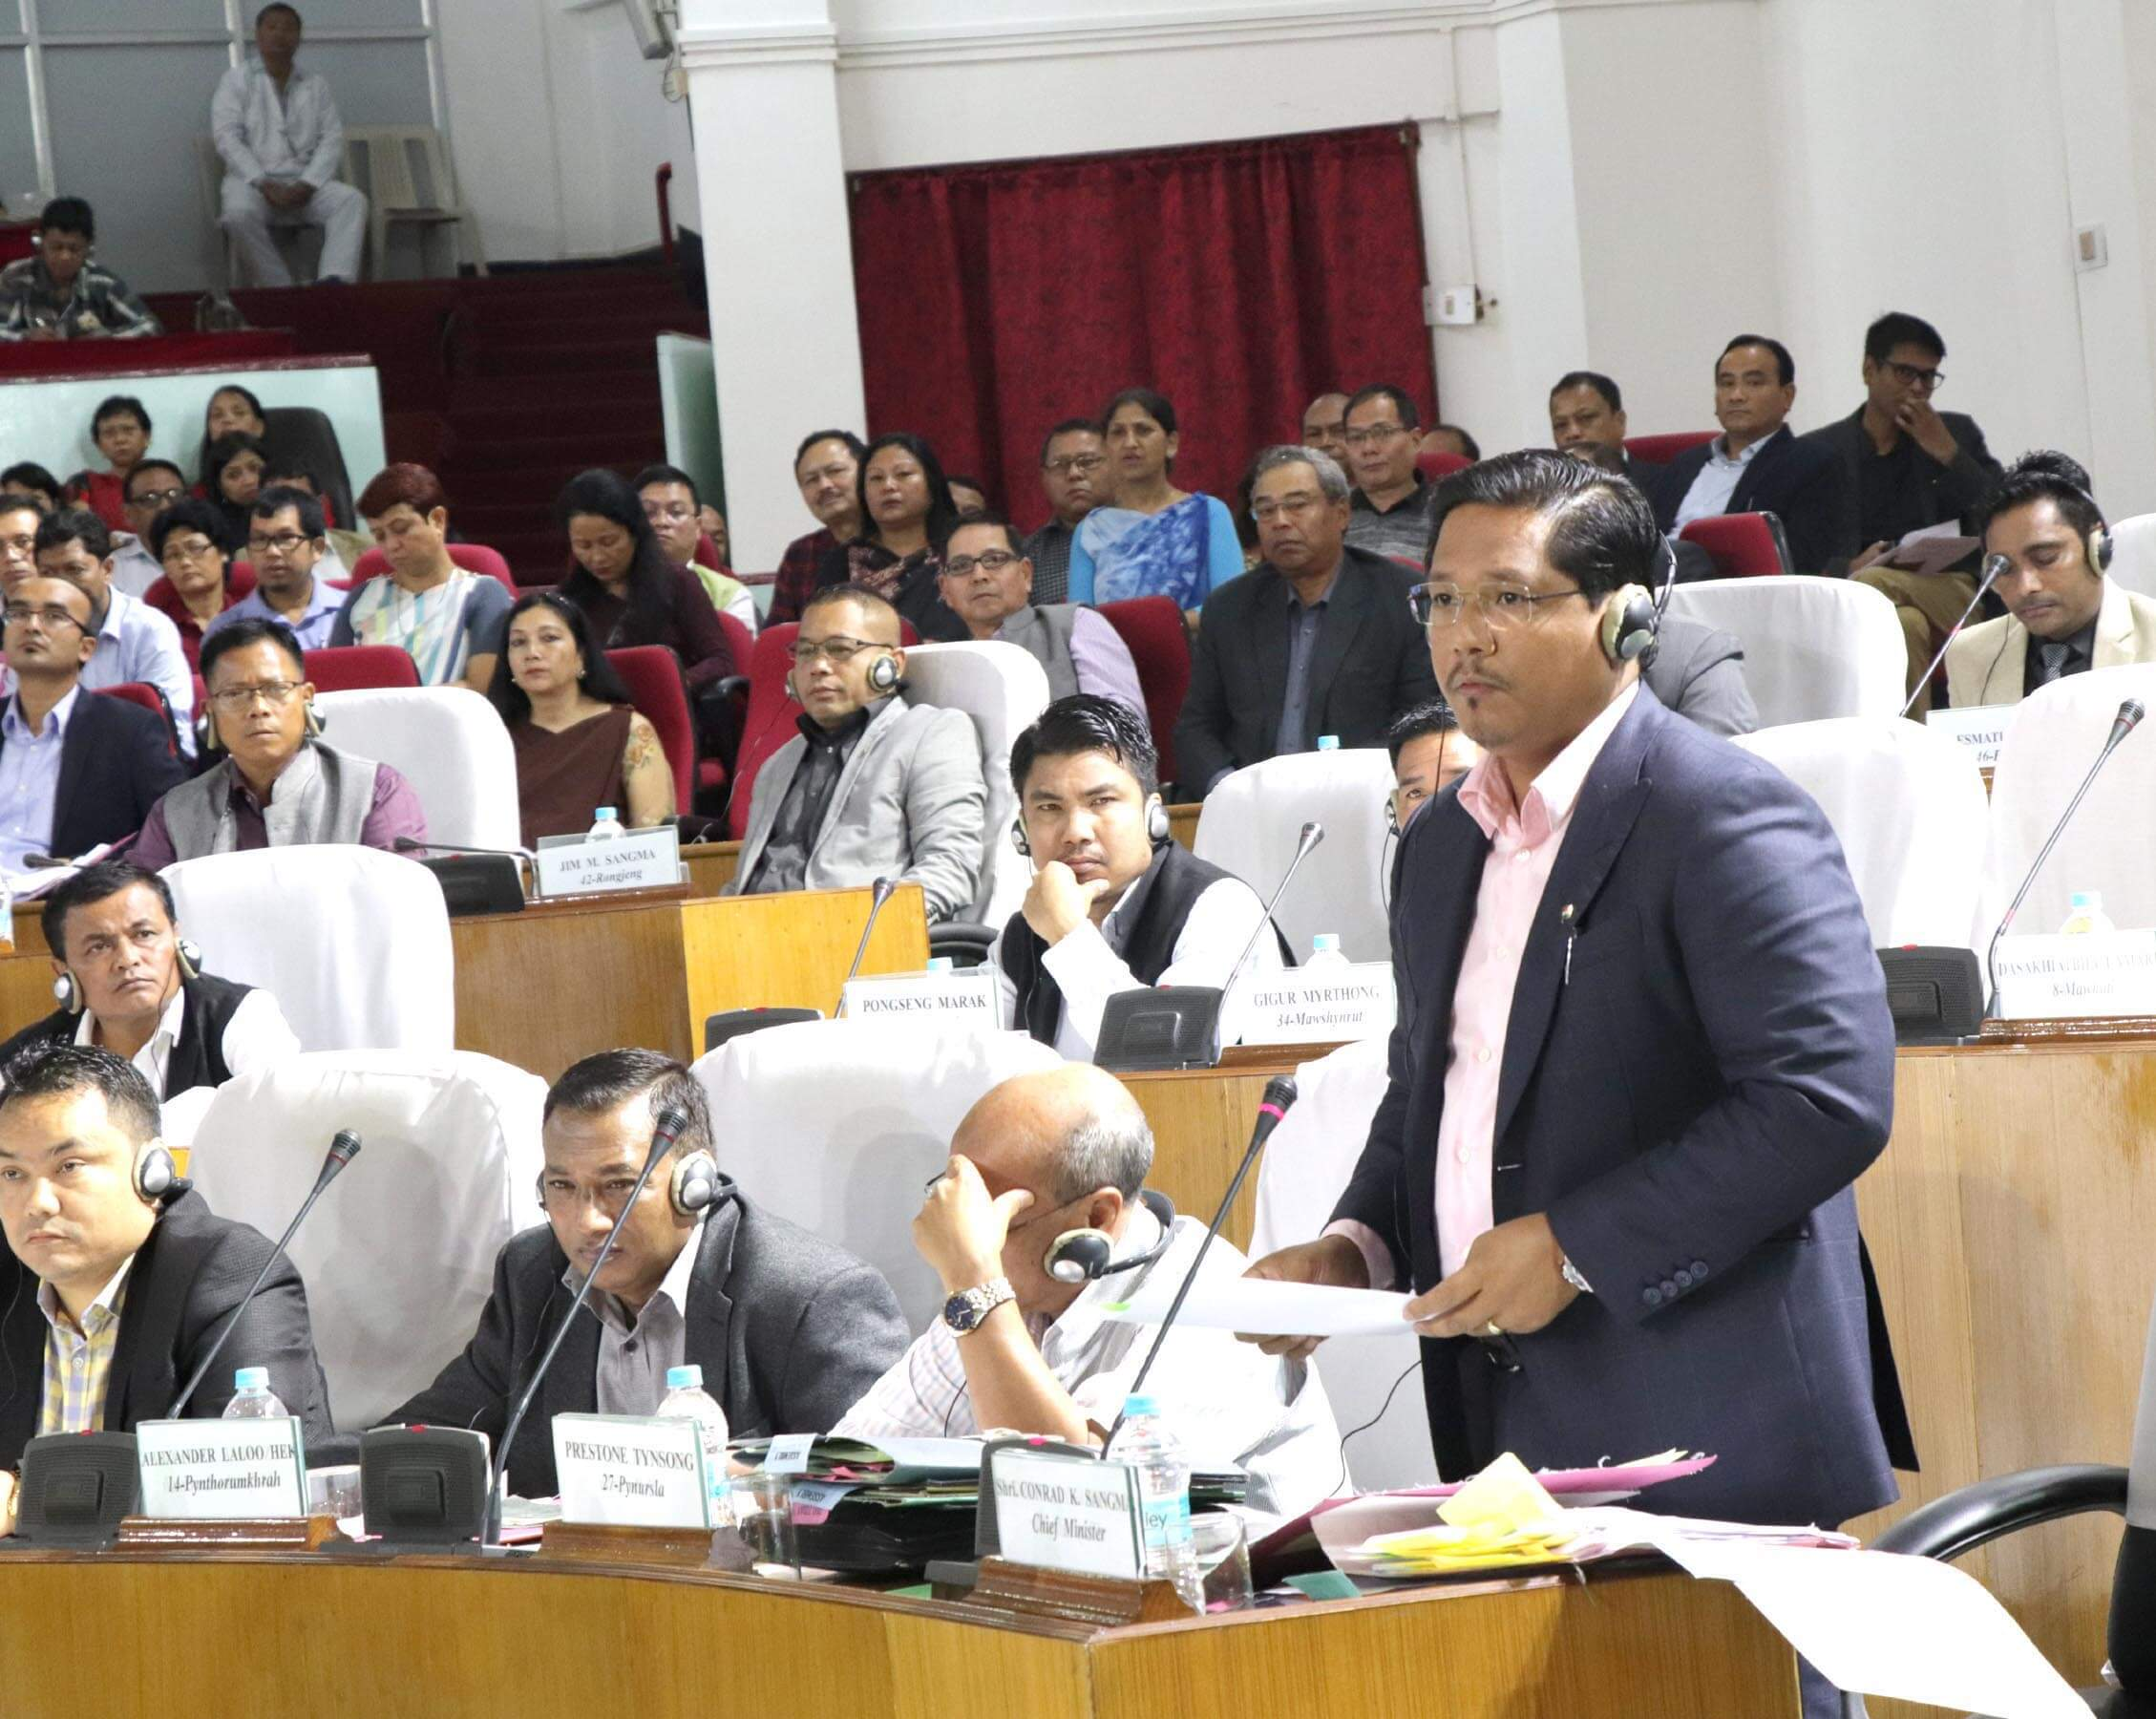 Meghalaya Assembly resolution : Inclusion of Khasi, Garo languages in 8th Schedule adopted